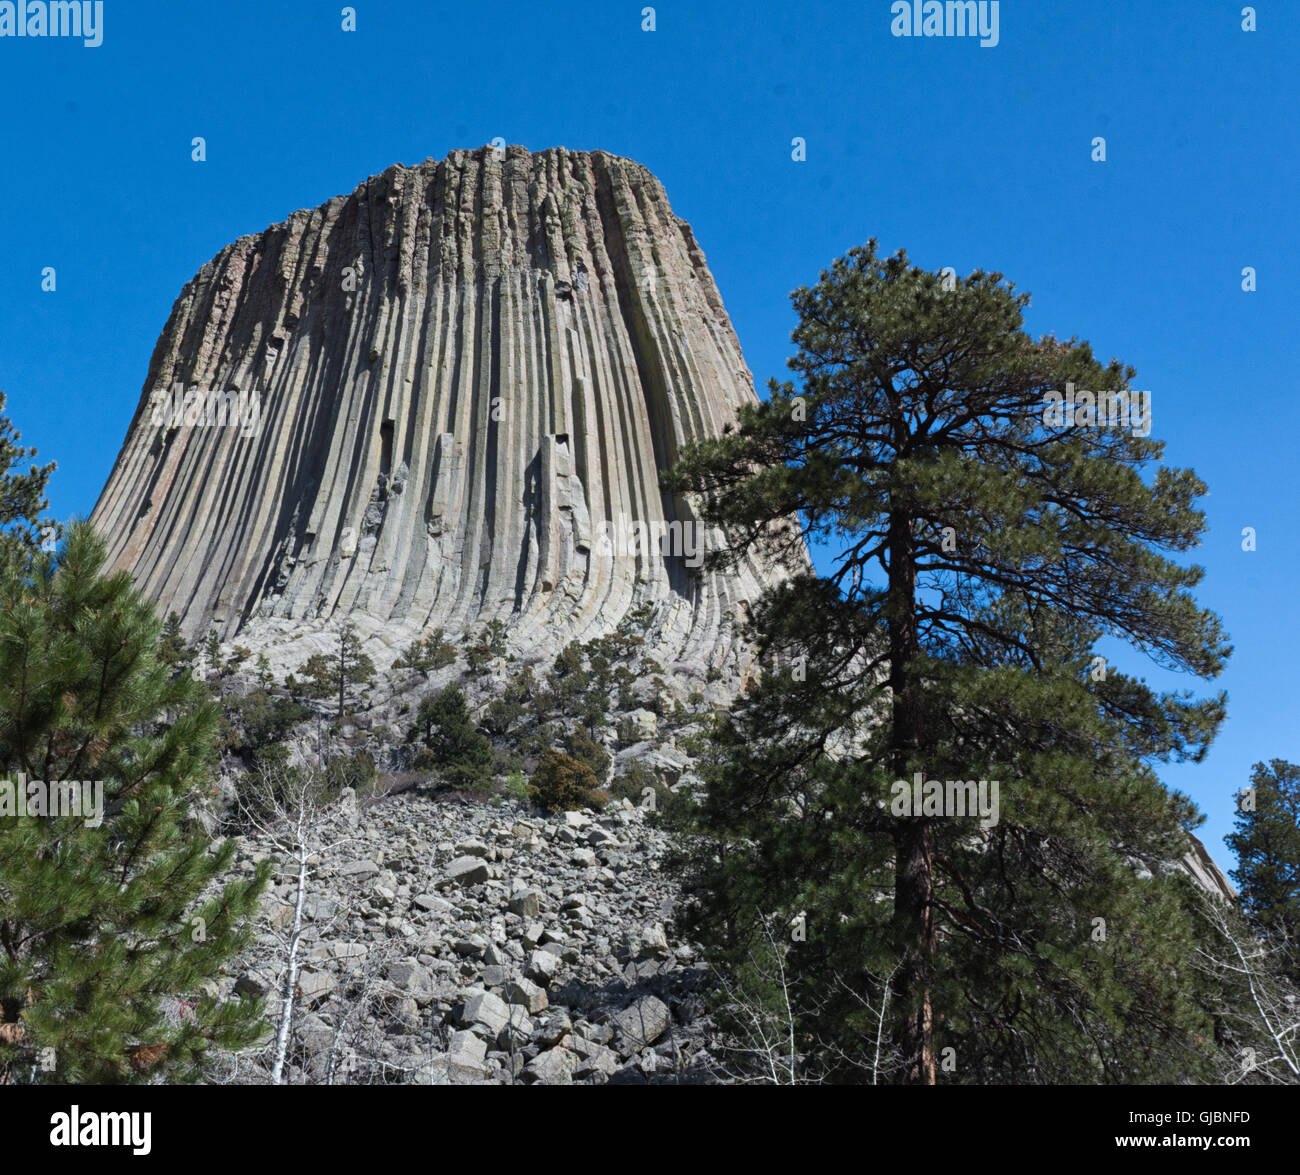 The grooves of granite reach up the side of Devil's Tower. - Stock Image